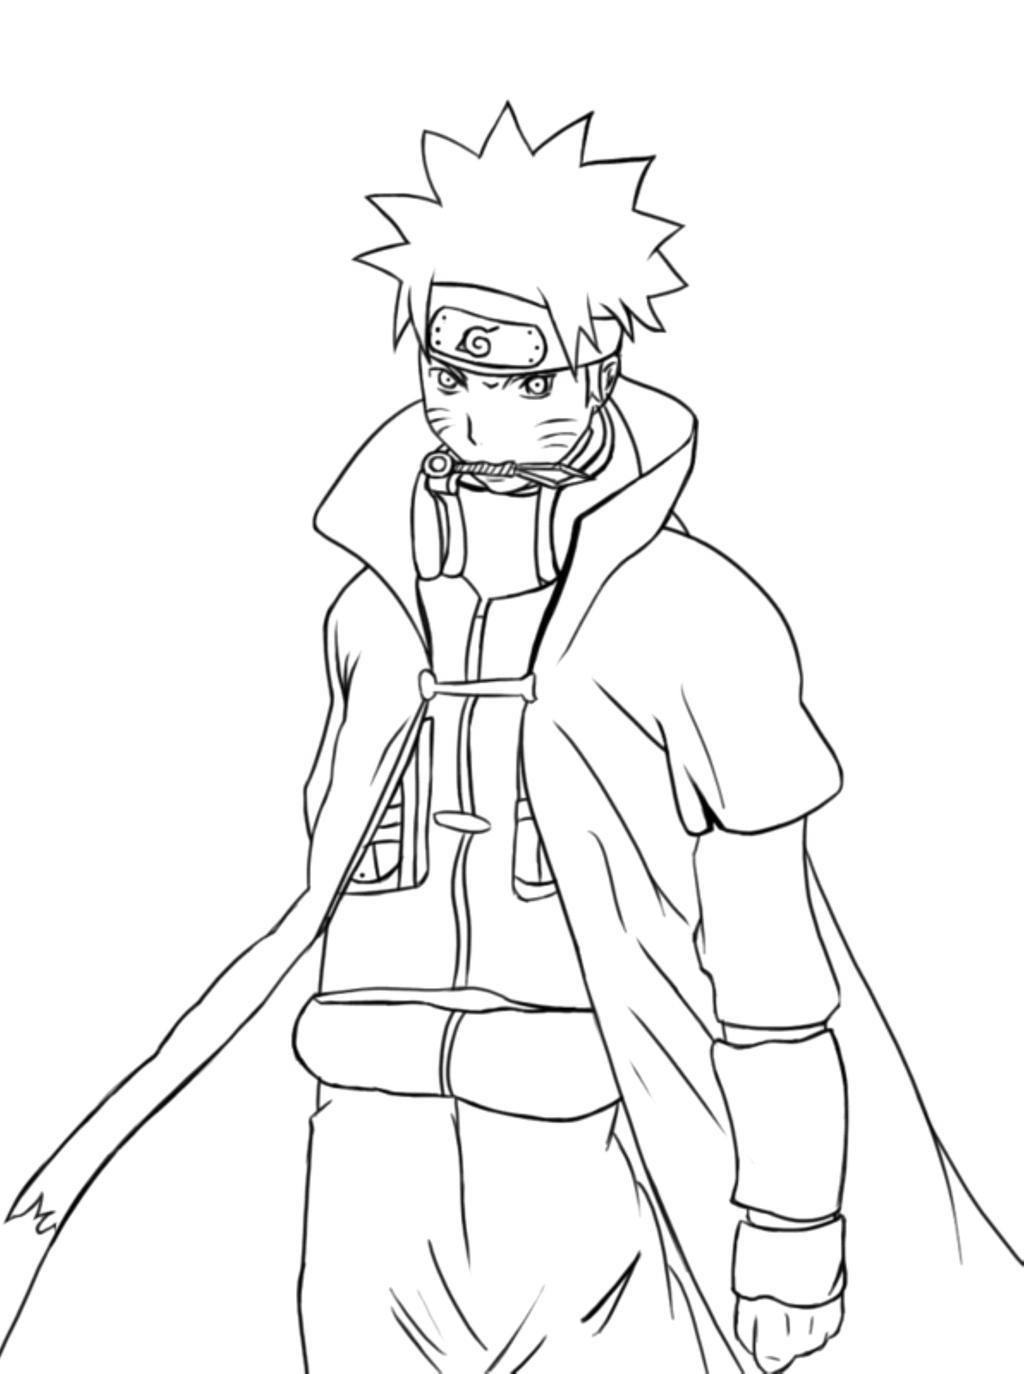 Naruto Coloring Pages Awesome Uzumaki